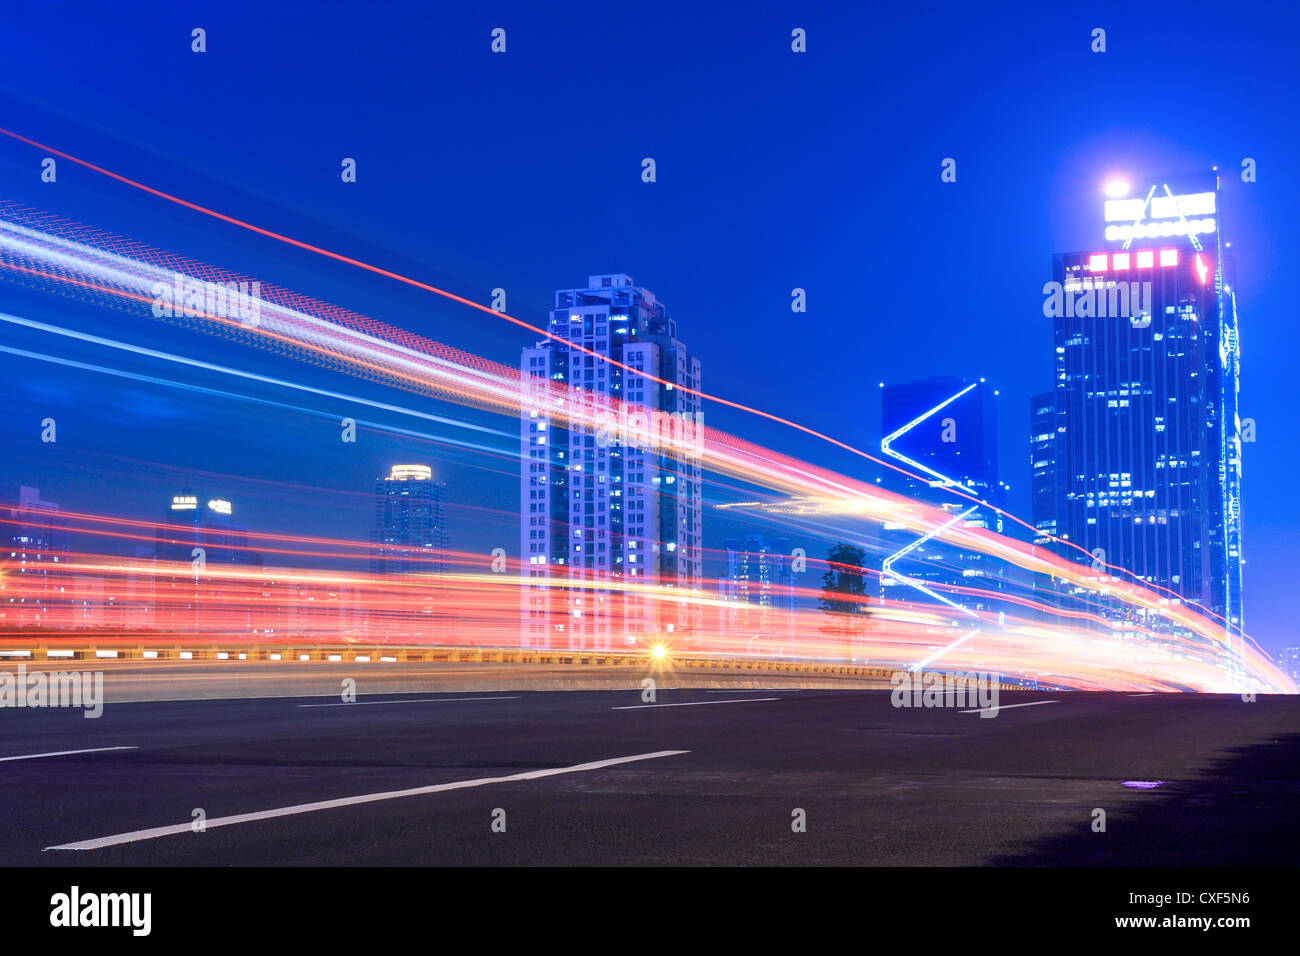 light trails on the highway - Stock Image